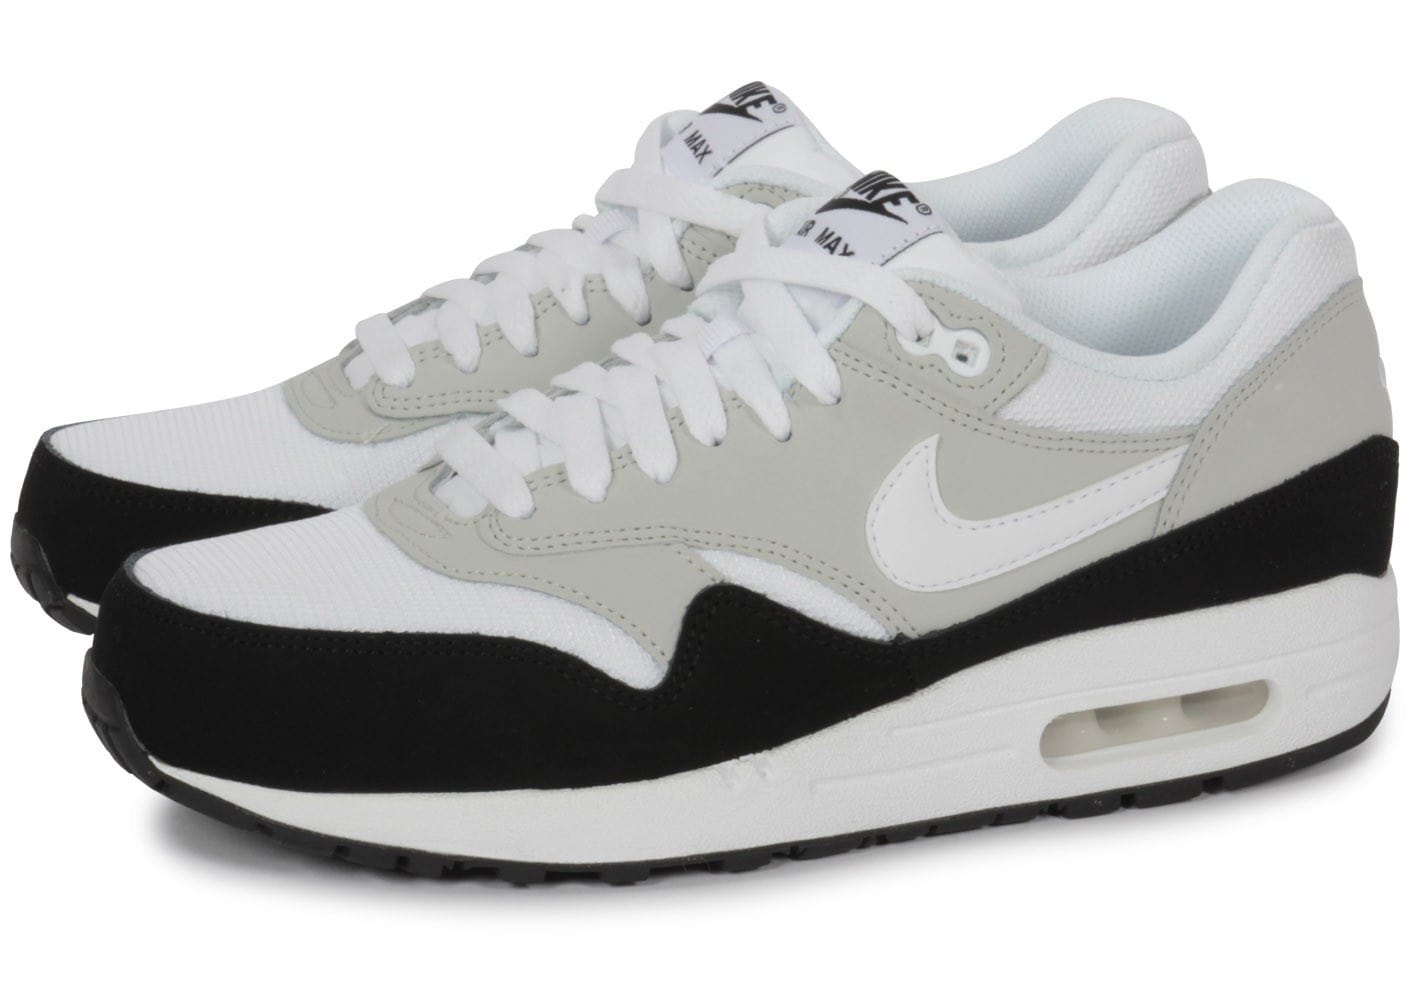 nike air max 1 blanche chaussures homme chausport. Black Bedroom Furniture Sets. Home Design Ideas